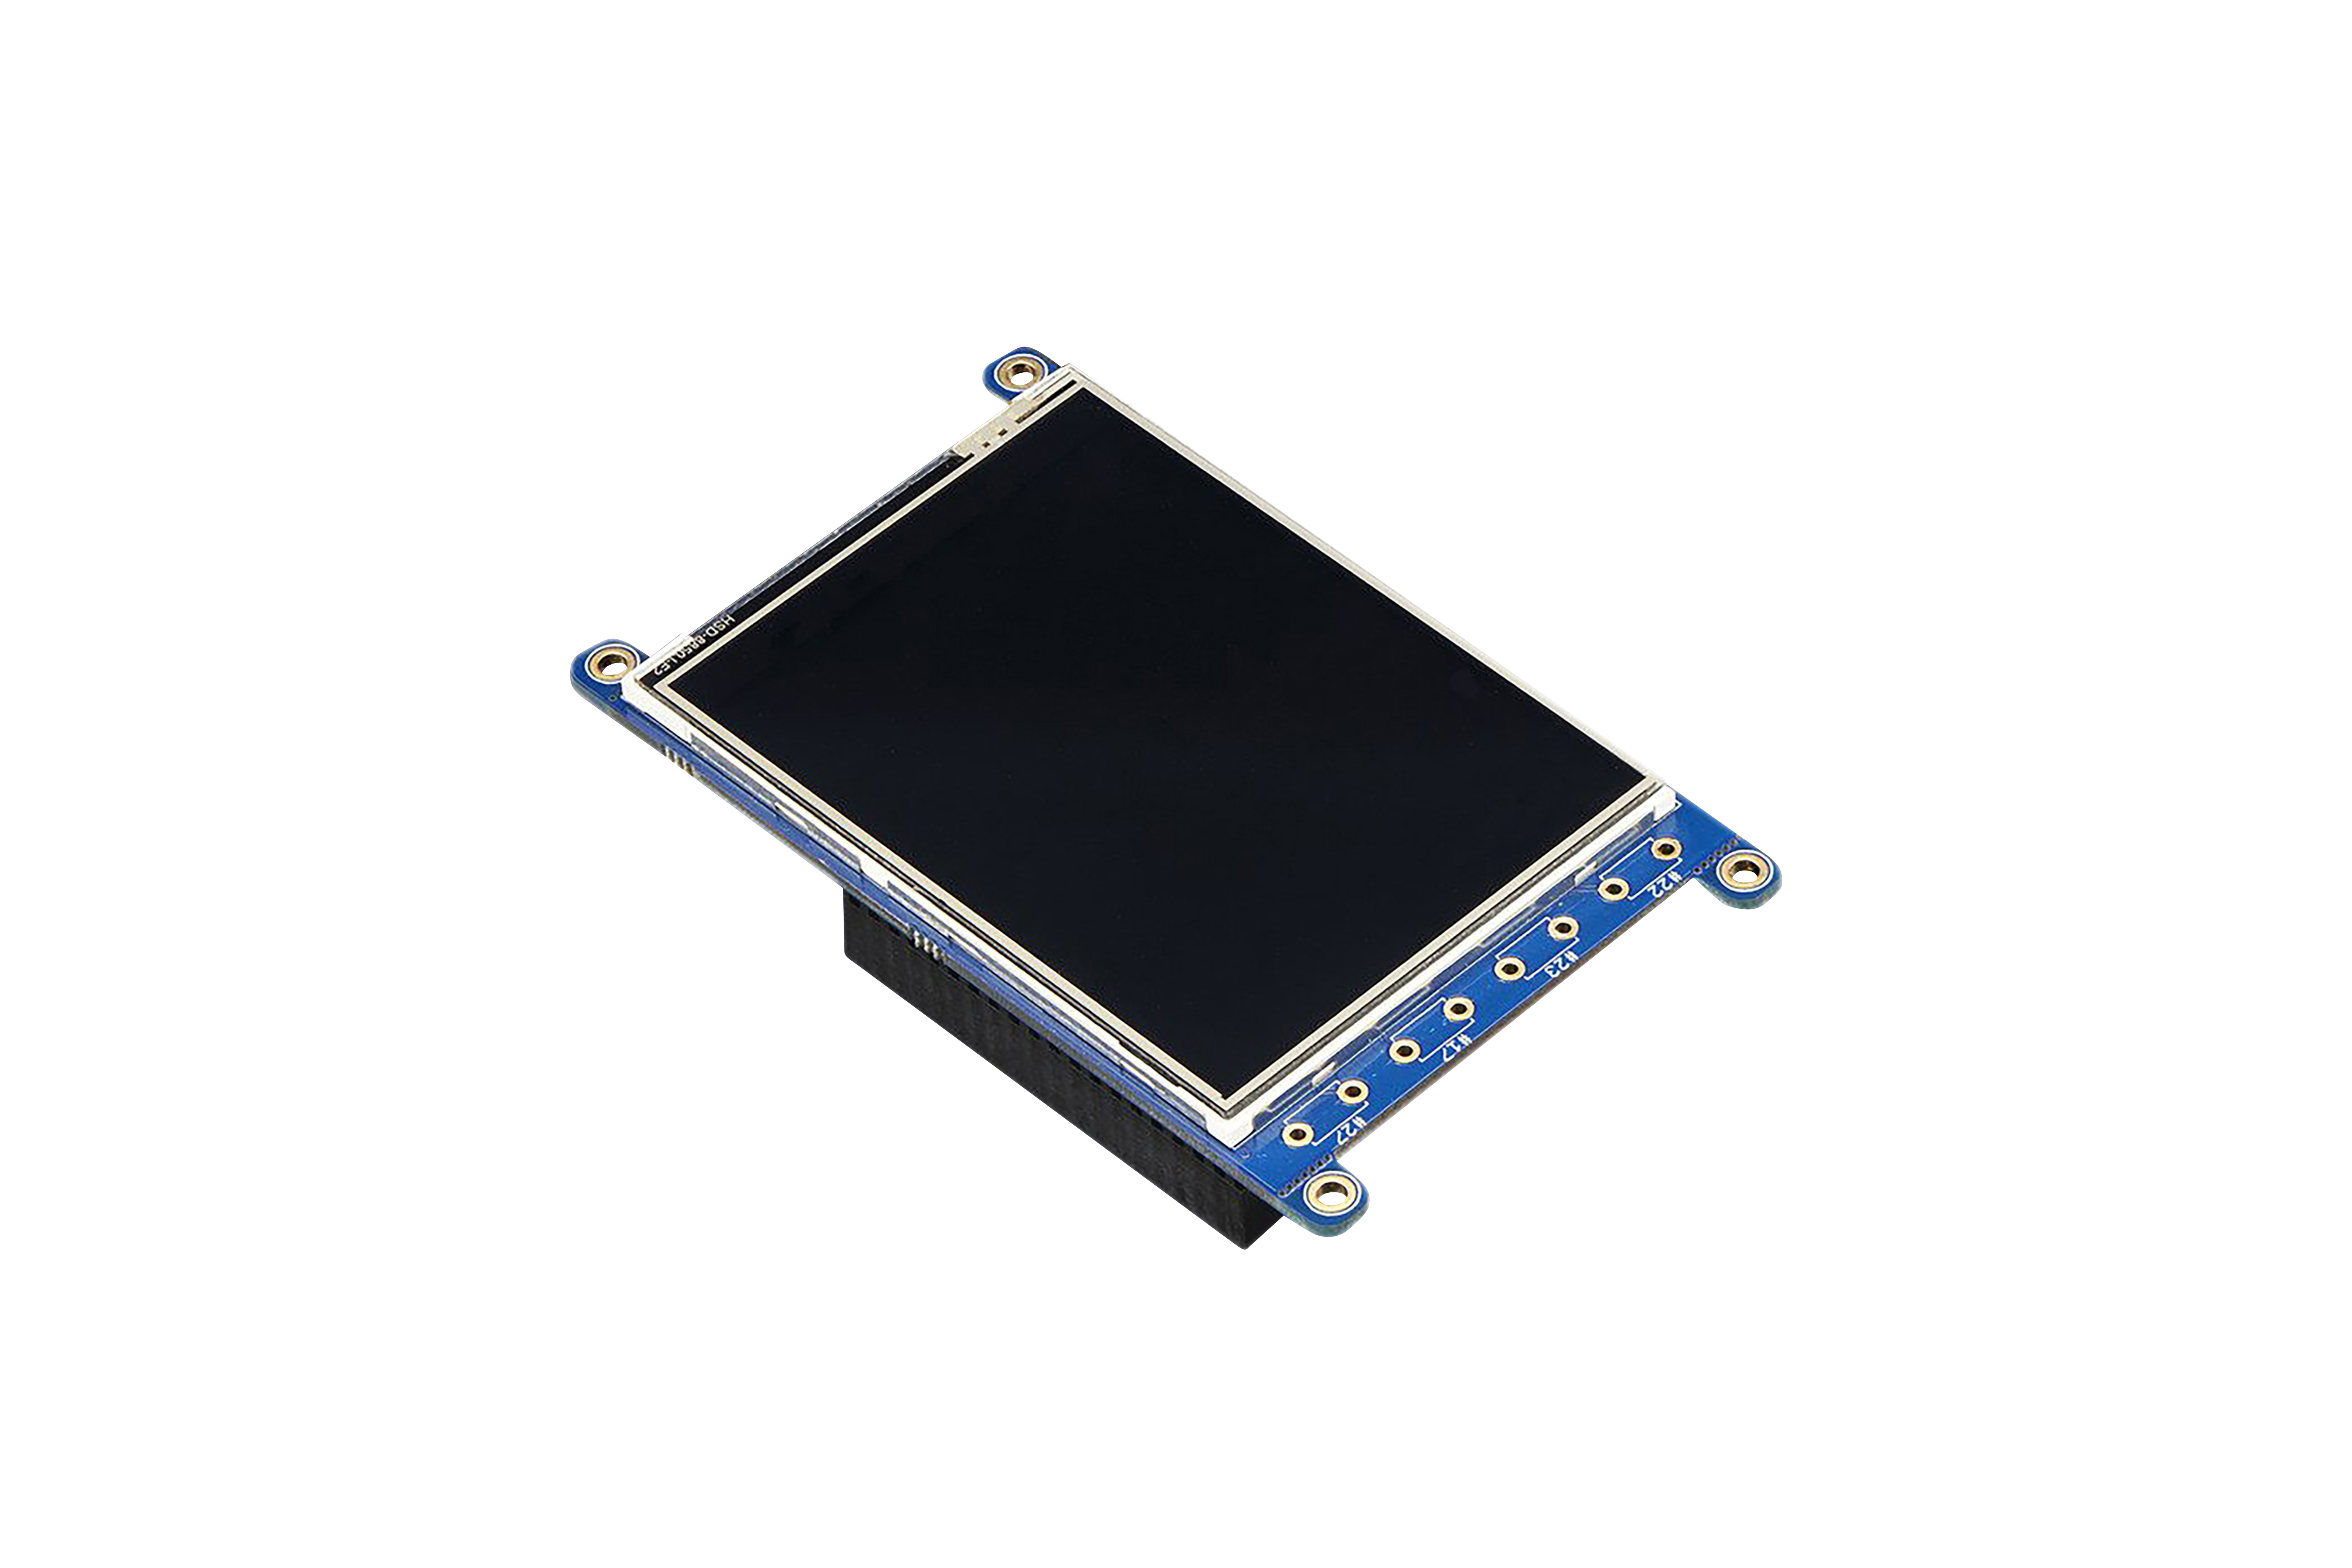 PiTFT Plus 2.8in LCD Touchscreen for Pi